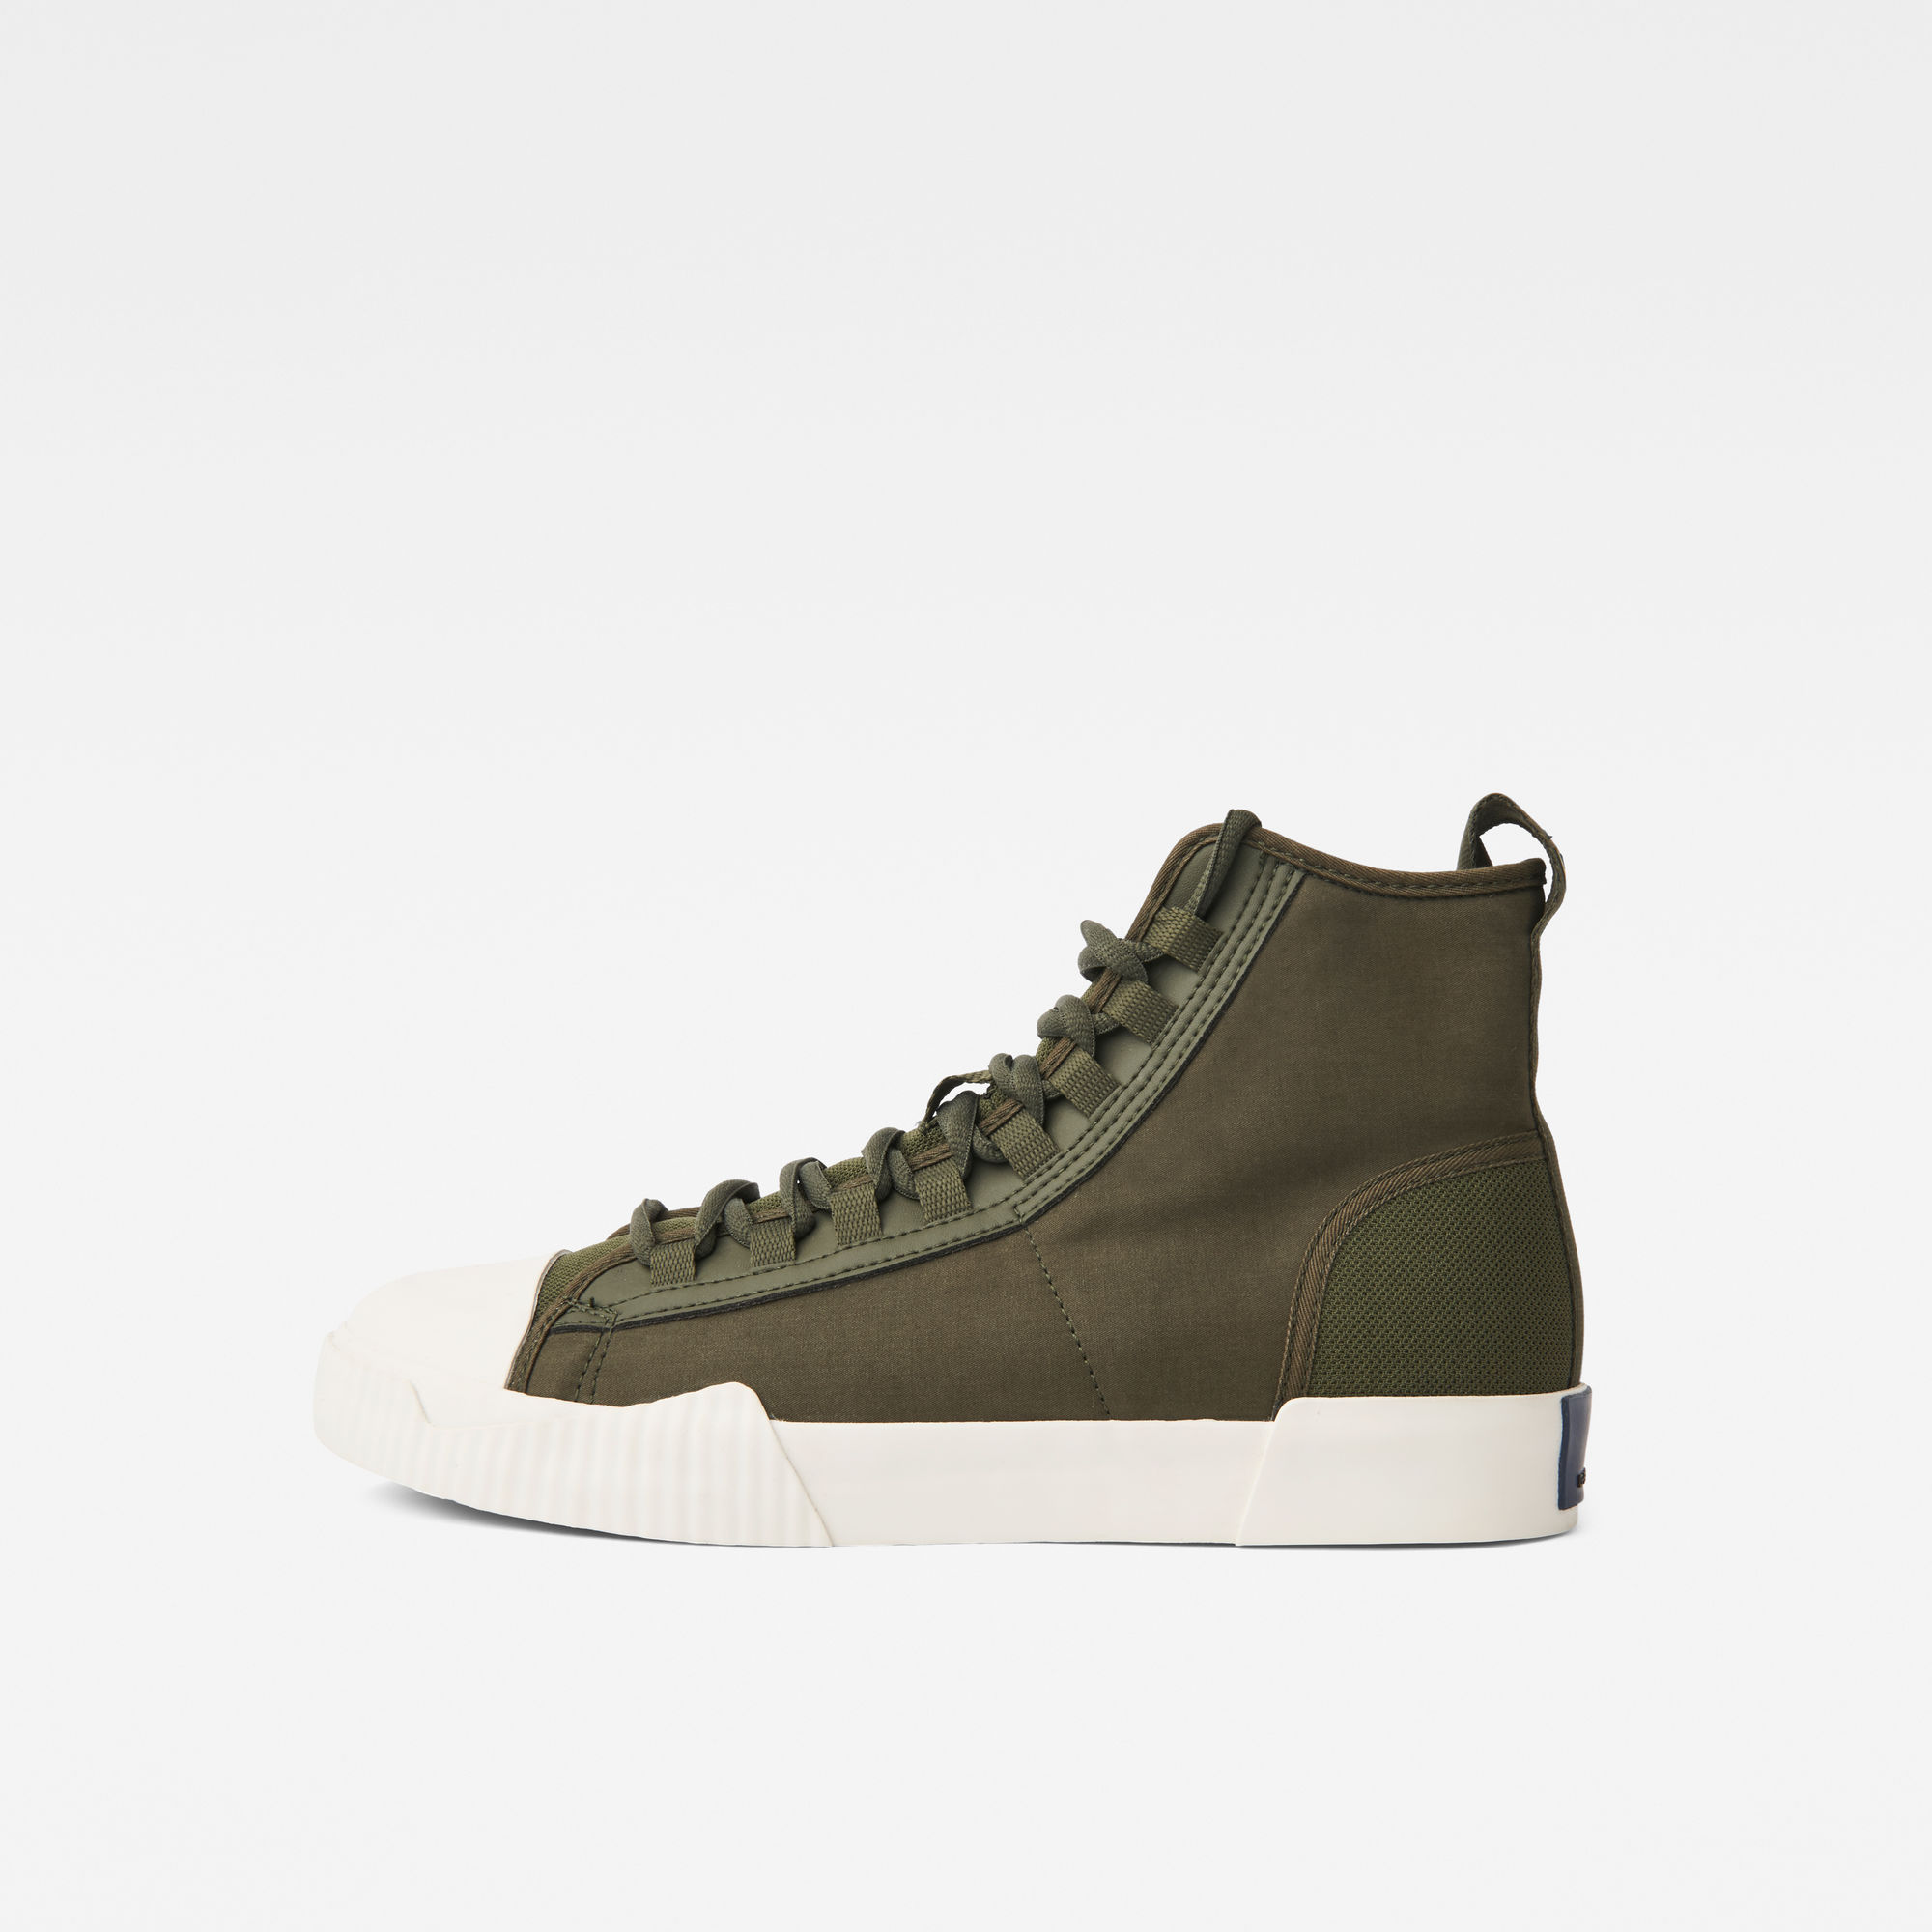 Image of G Star Raw Rackam Scuba Mid